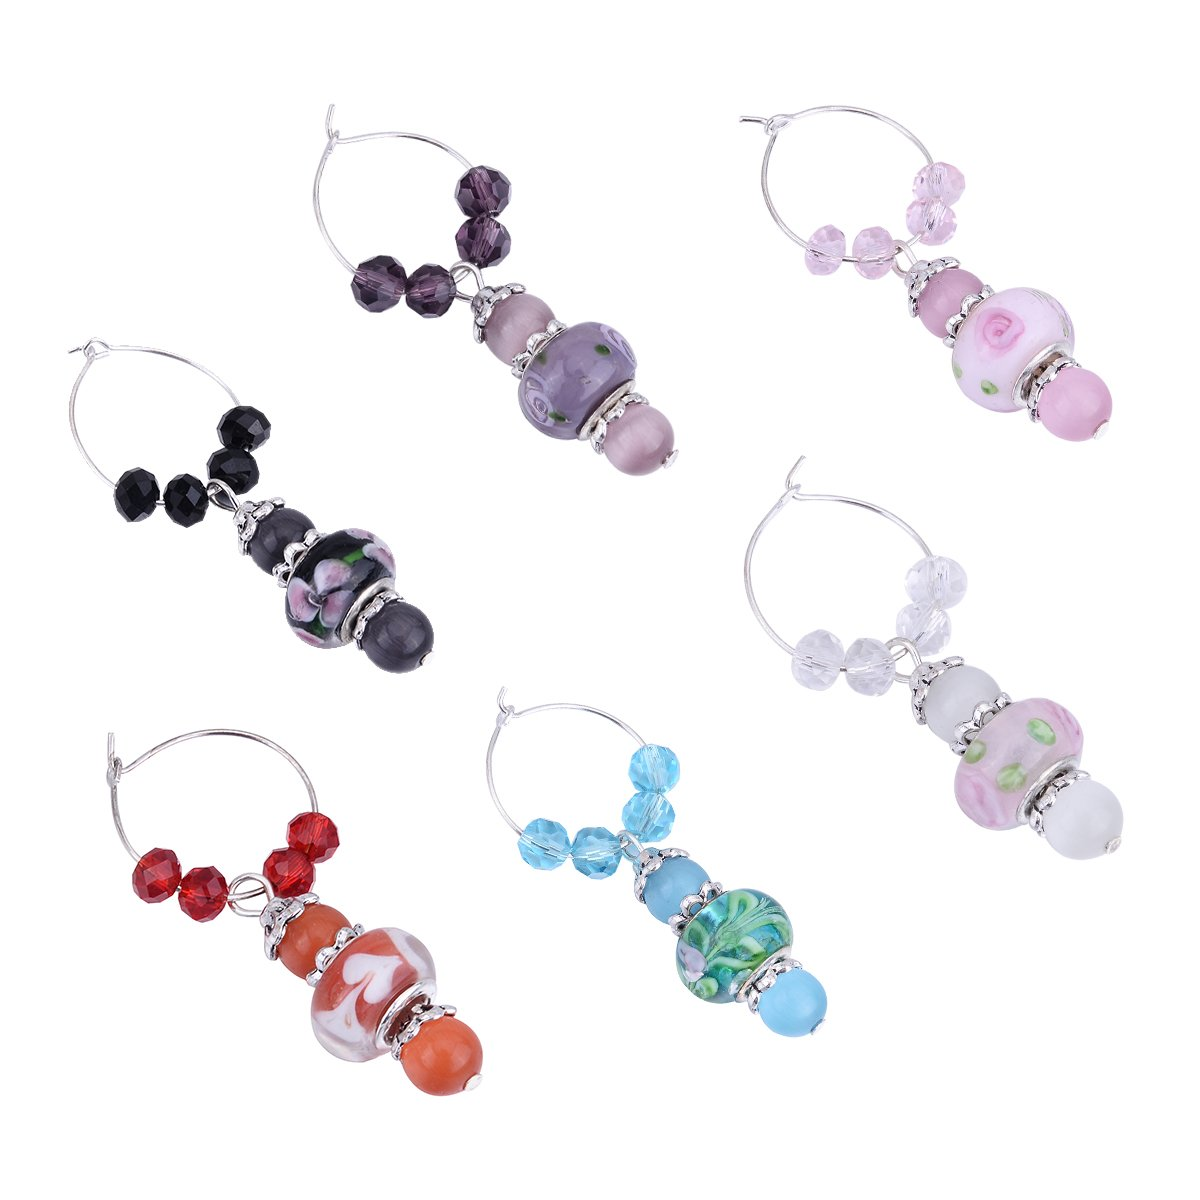 HooAMI Mixed Murano Lampwork Glass Beads Crystal European Wine Glass Charms Markers Tag Pendant Pack of 6pcs